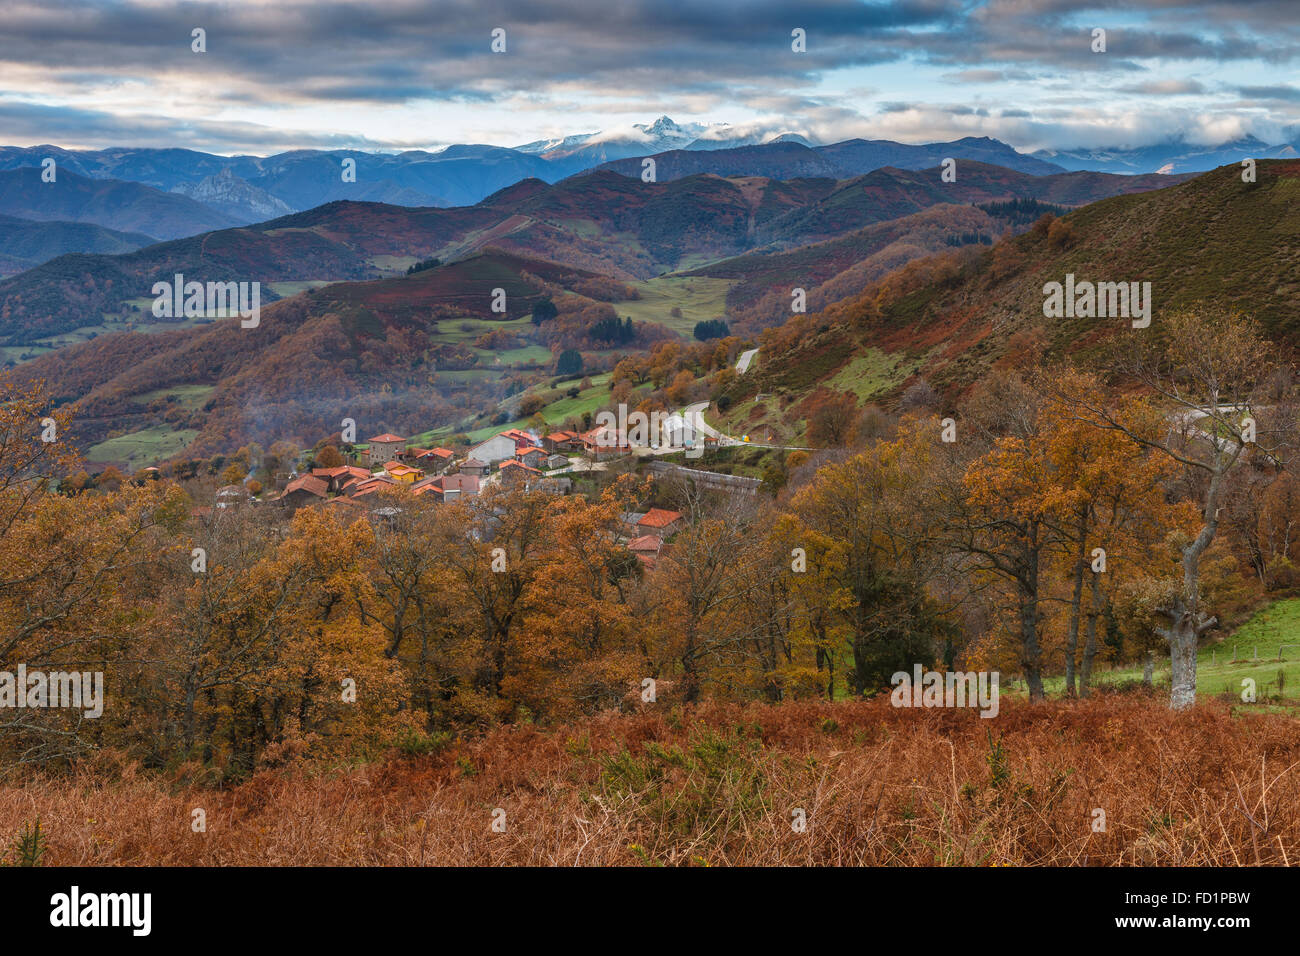 Pendes (a small town near by the Picos de Europa National Park) in autumn, Liebana, Cantabria, Spain. - Stock Image